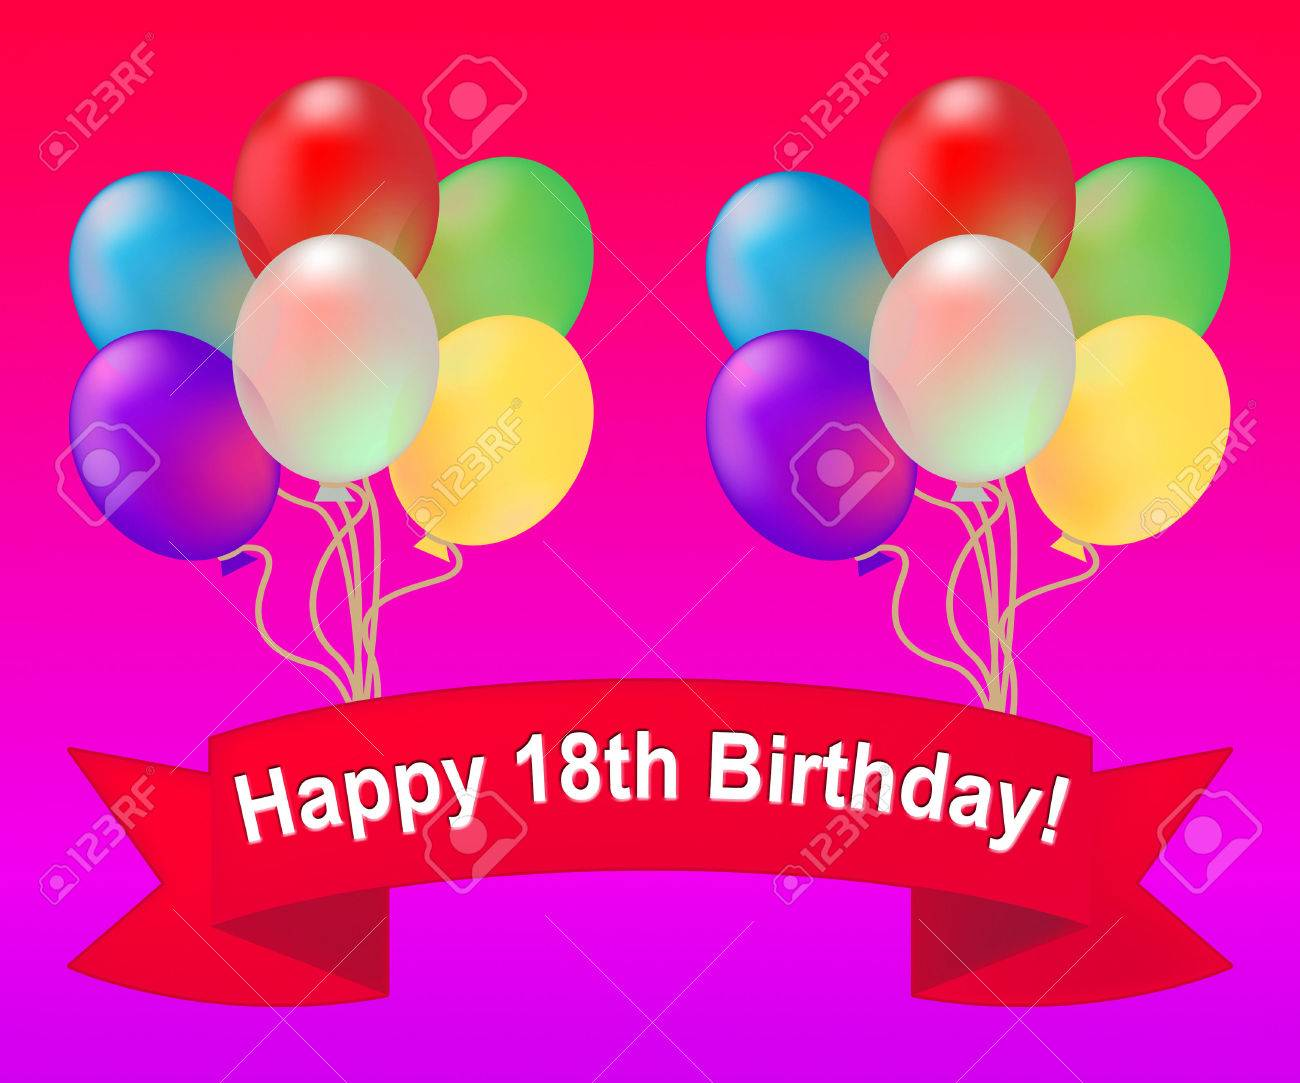 Happy Eighteenth Birthday Balloons Meaning 18th Party Celebration 3d Illustration Stock